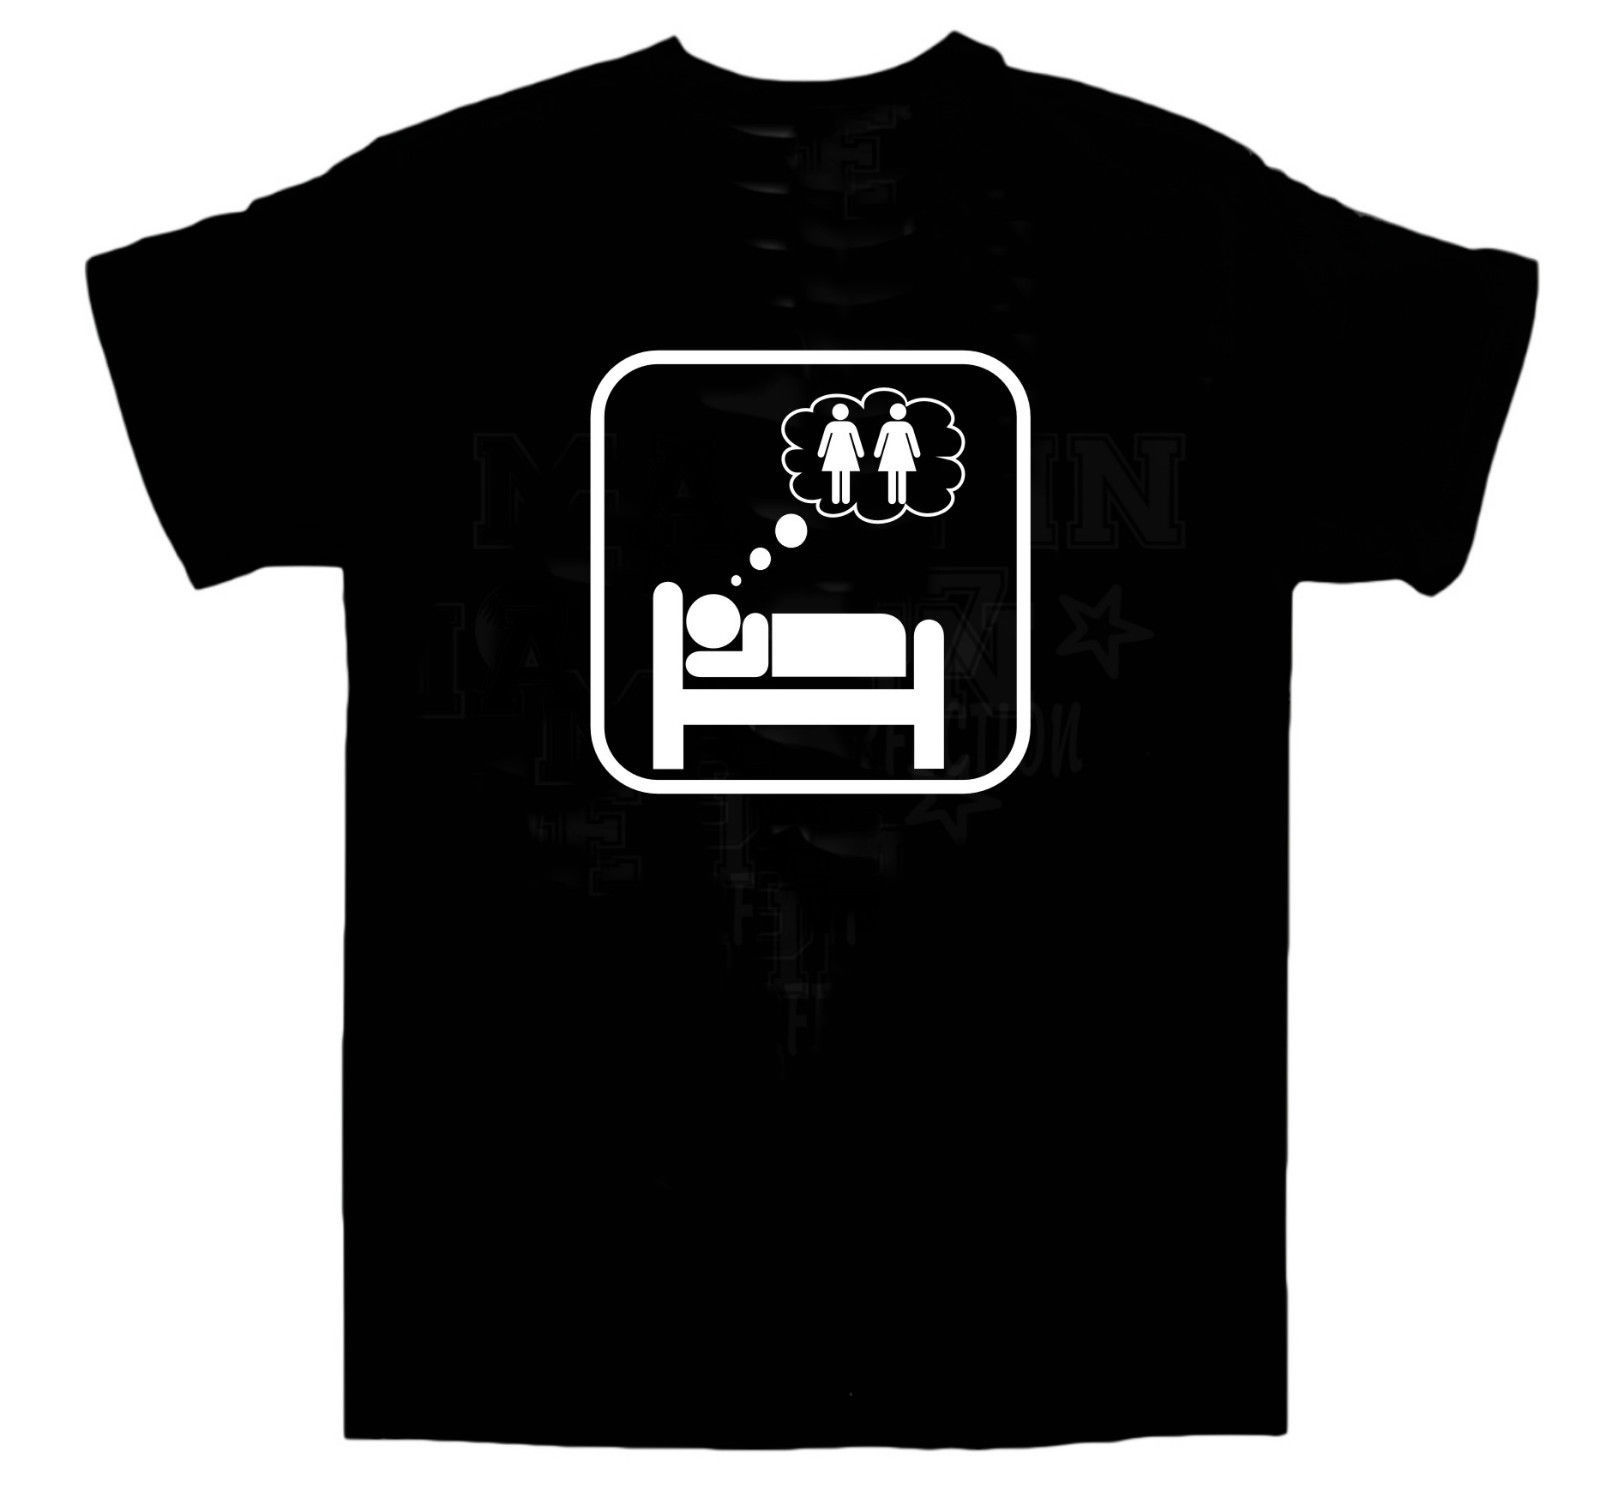 Dreaming Of 2 Girls T-shirt / Sex / Threesome / Orgy / Wedding / BBQ / Size XL image